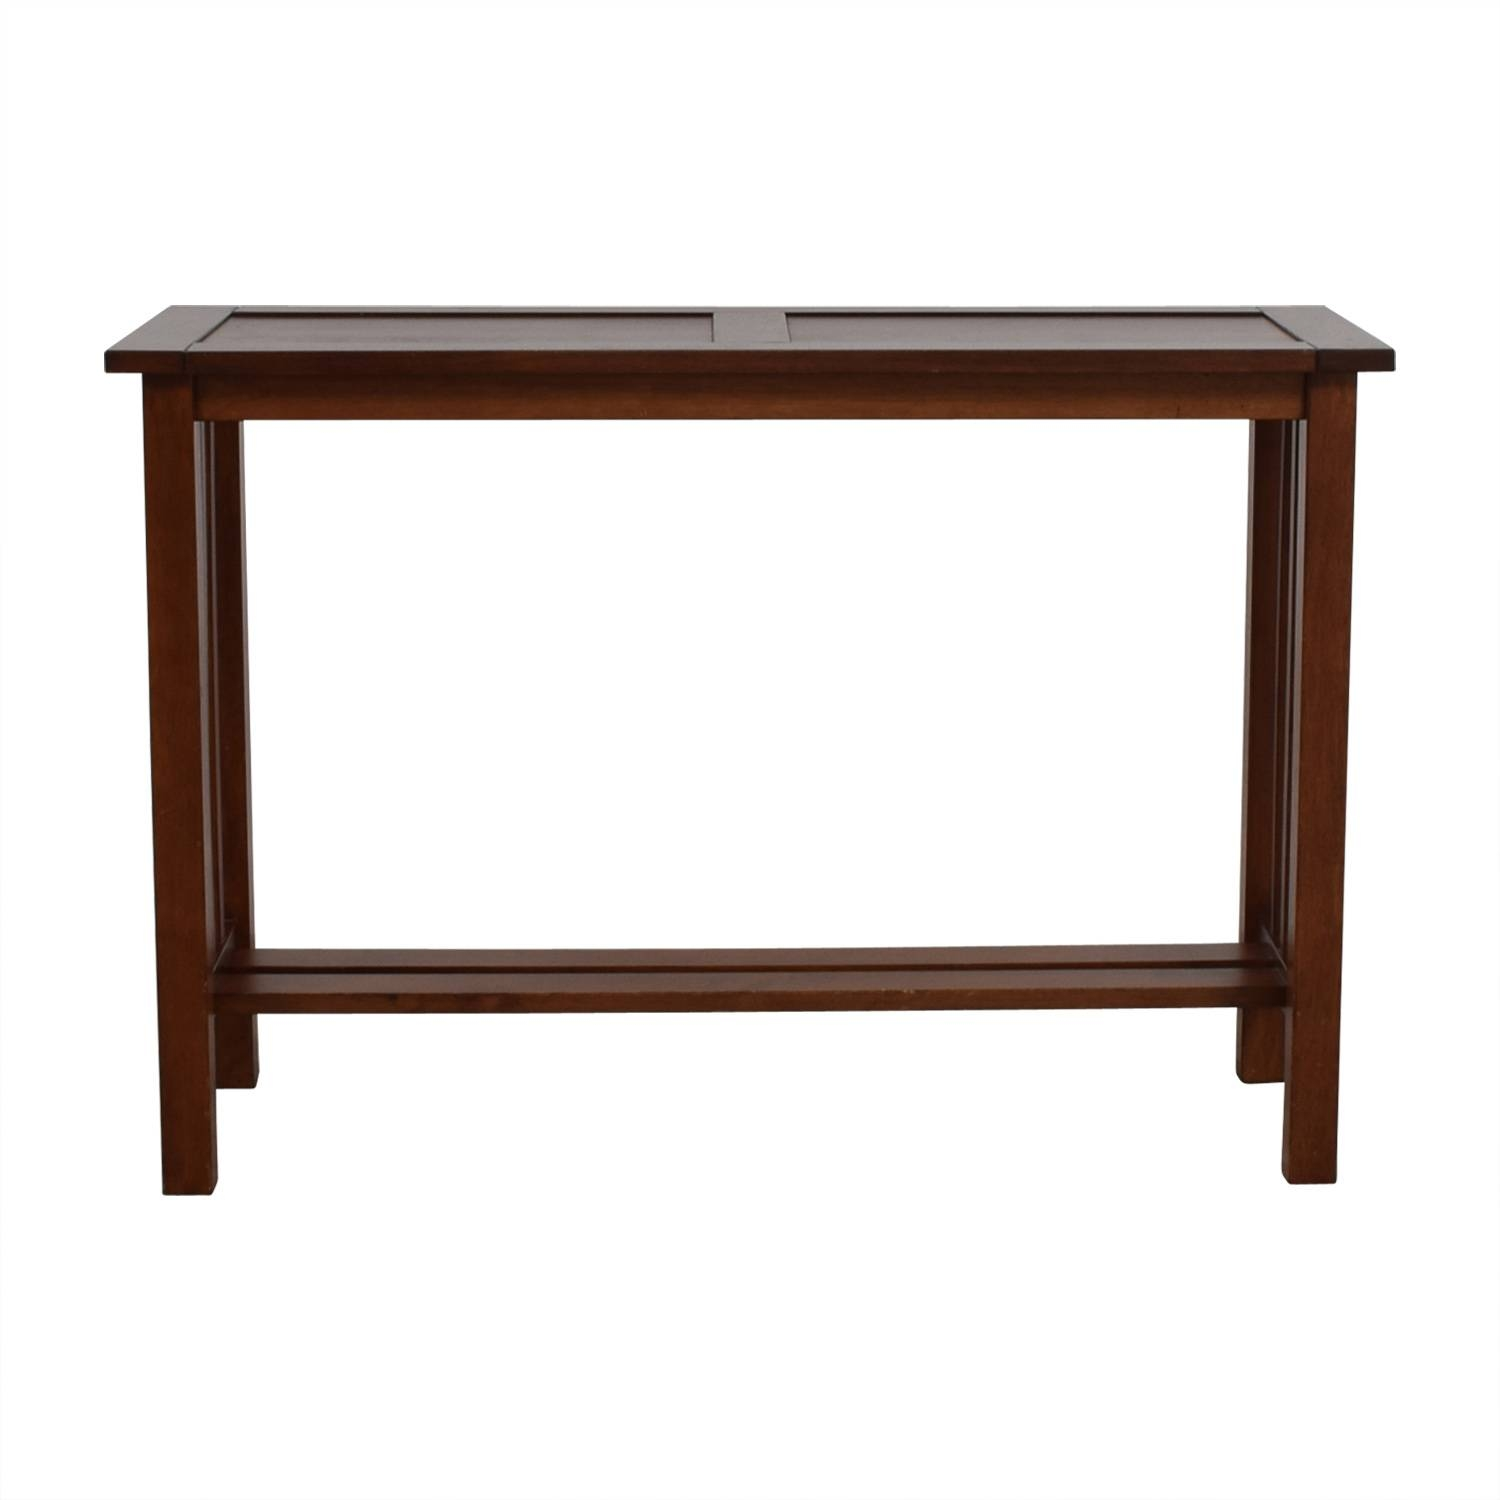 25% Off - Crate & Barrel Crate & Barrel Console Table / Tables regarding Crate and Barrel Sofa Tables (Image 10 of 15)